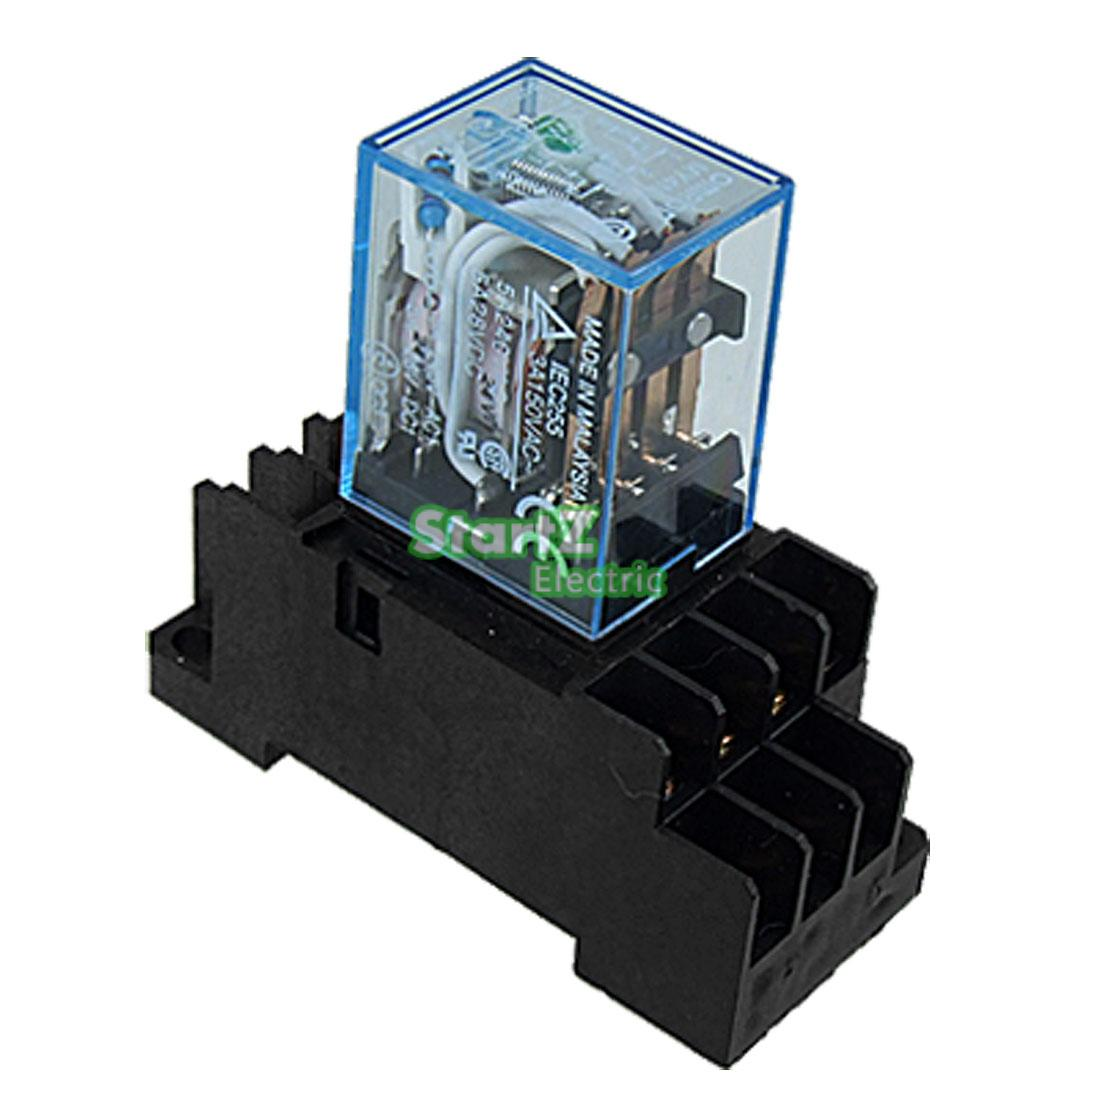 Online Buy Wholesale Dpdt Relay With Socket Base From China Dpdt - Dpdt relay buy